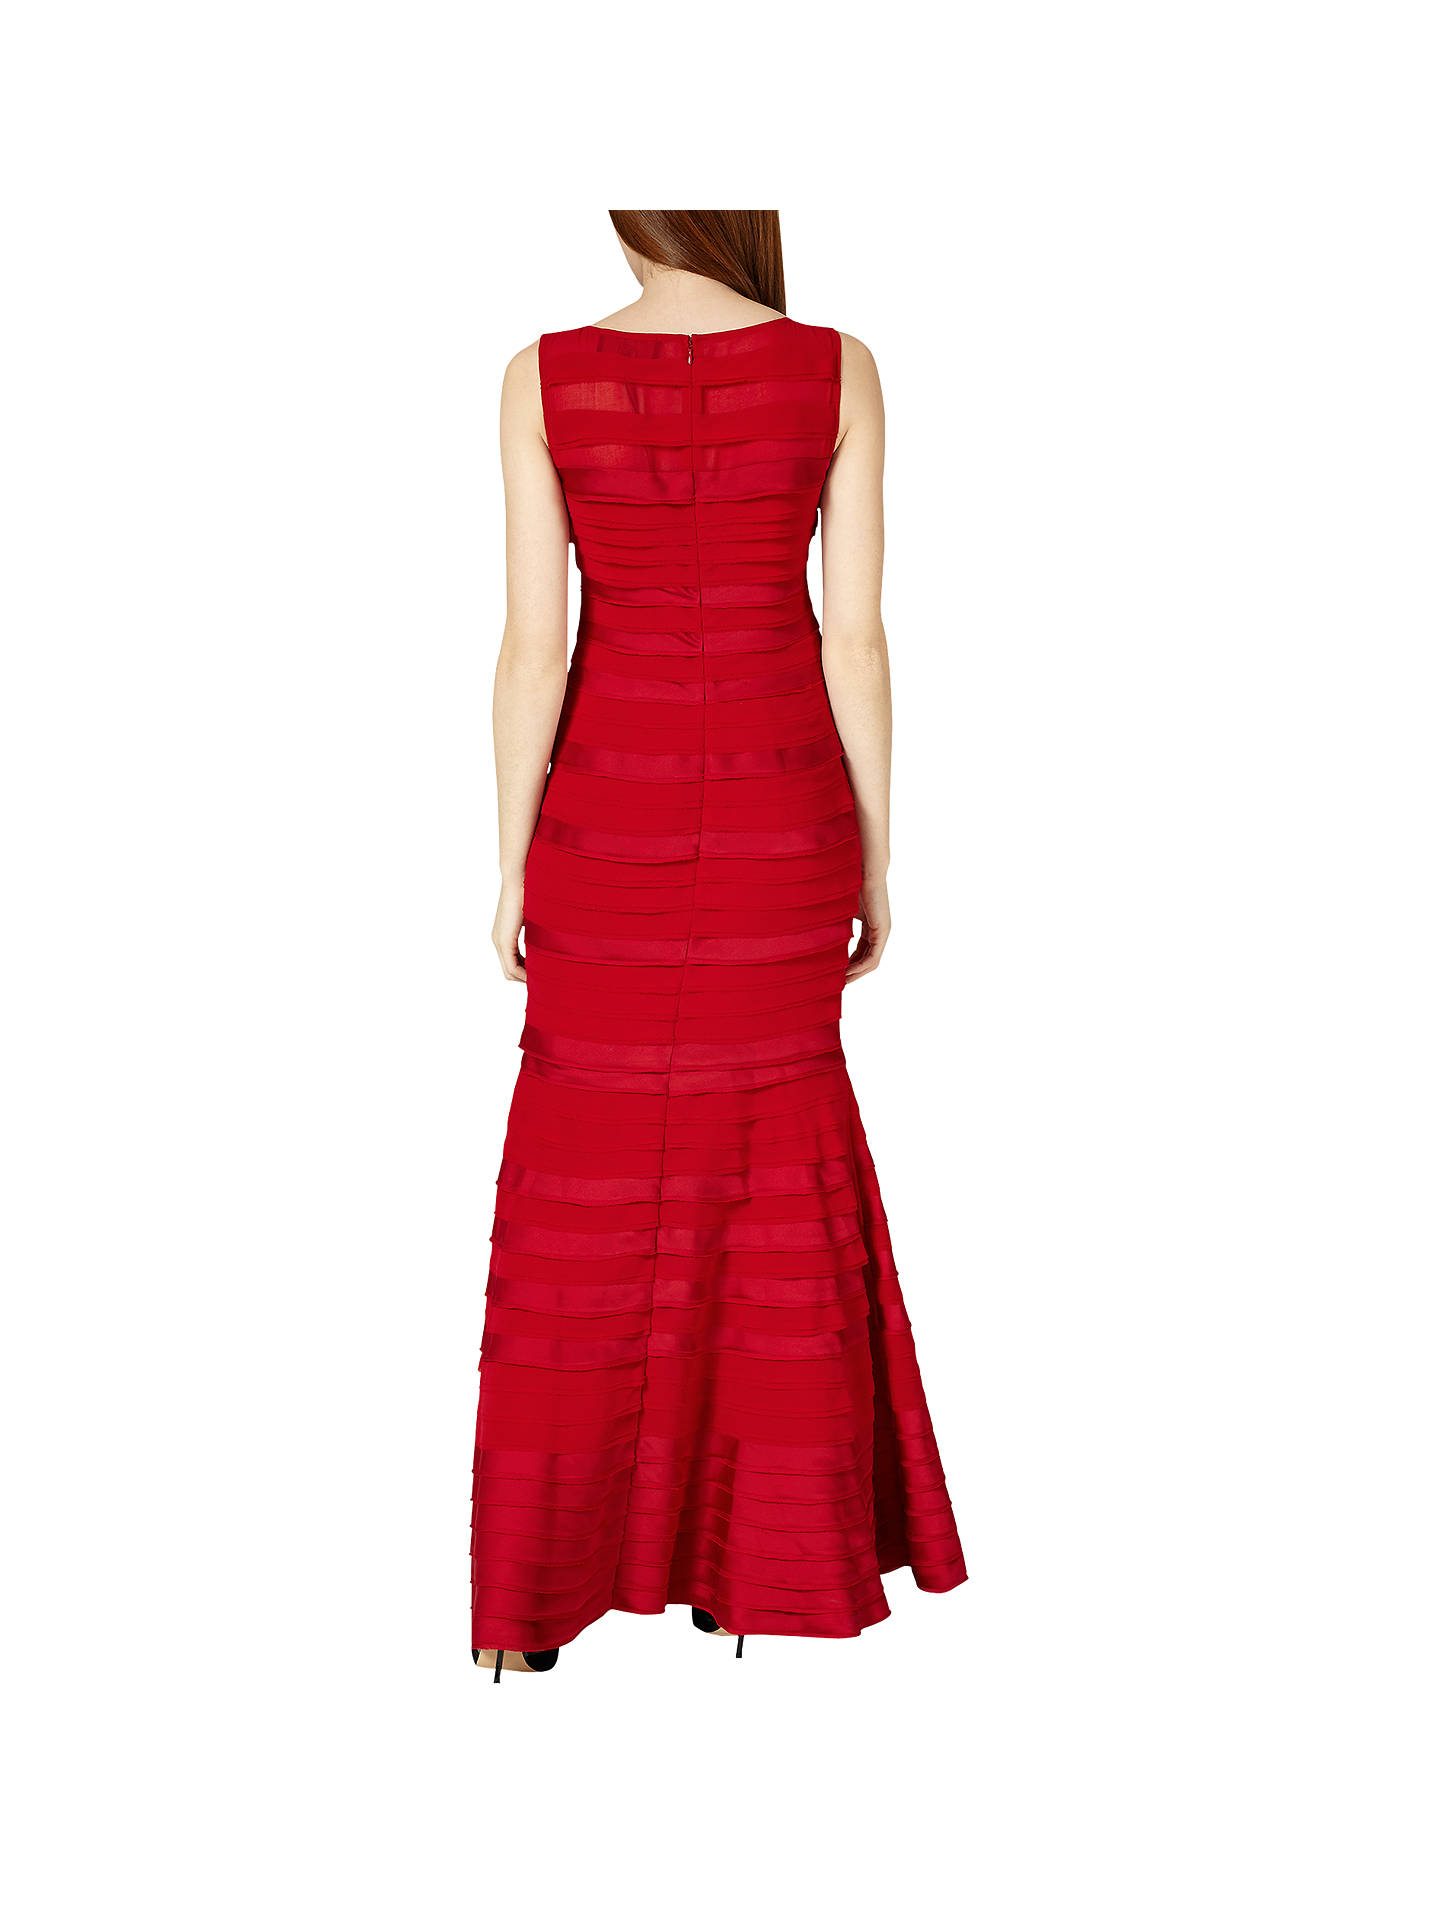 BuyPhase Eight Collection 8 Shannon Layered Dress, Rouge, 6 Online at johnlewis.com